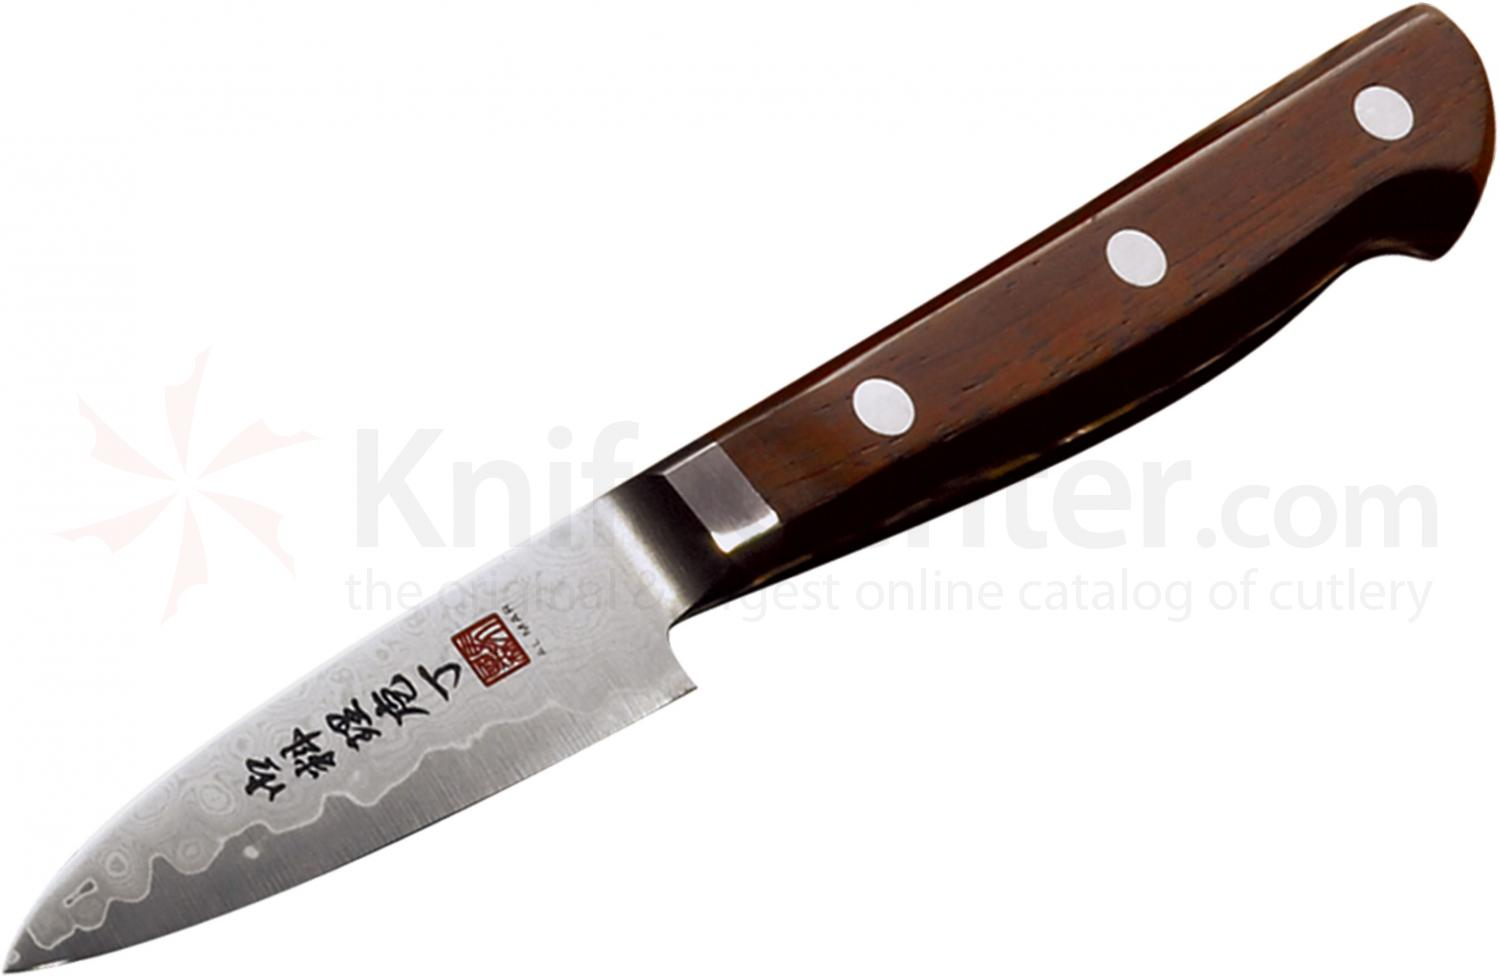 Al Mar UC2 Cocobolo Ultra-Chef Paring Knife 3 inch VG10 Damascus Blade